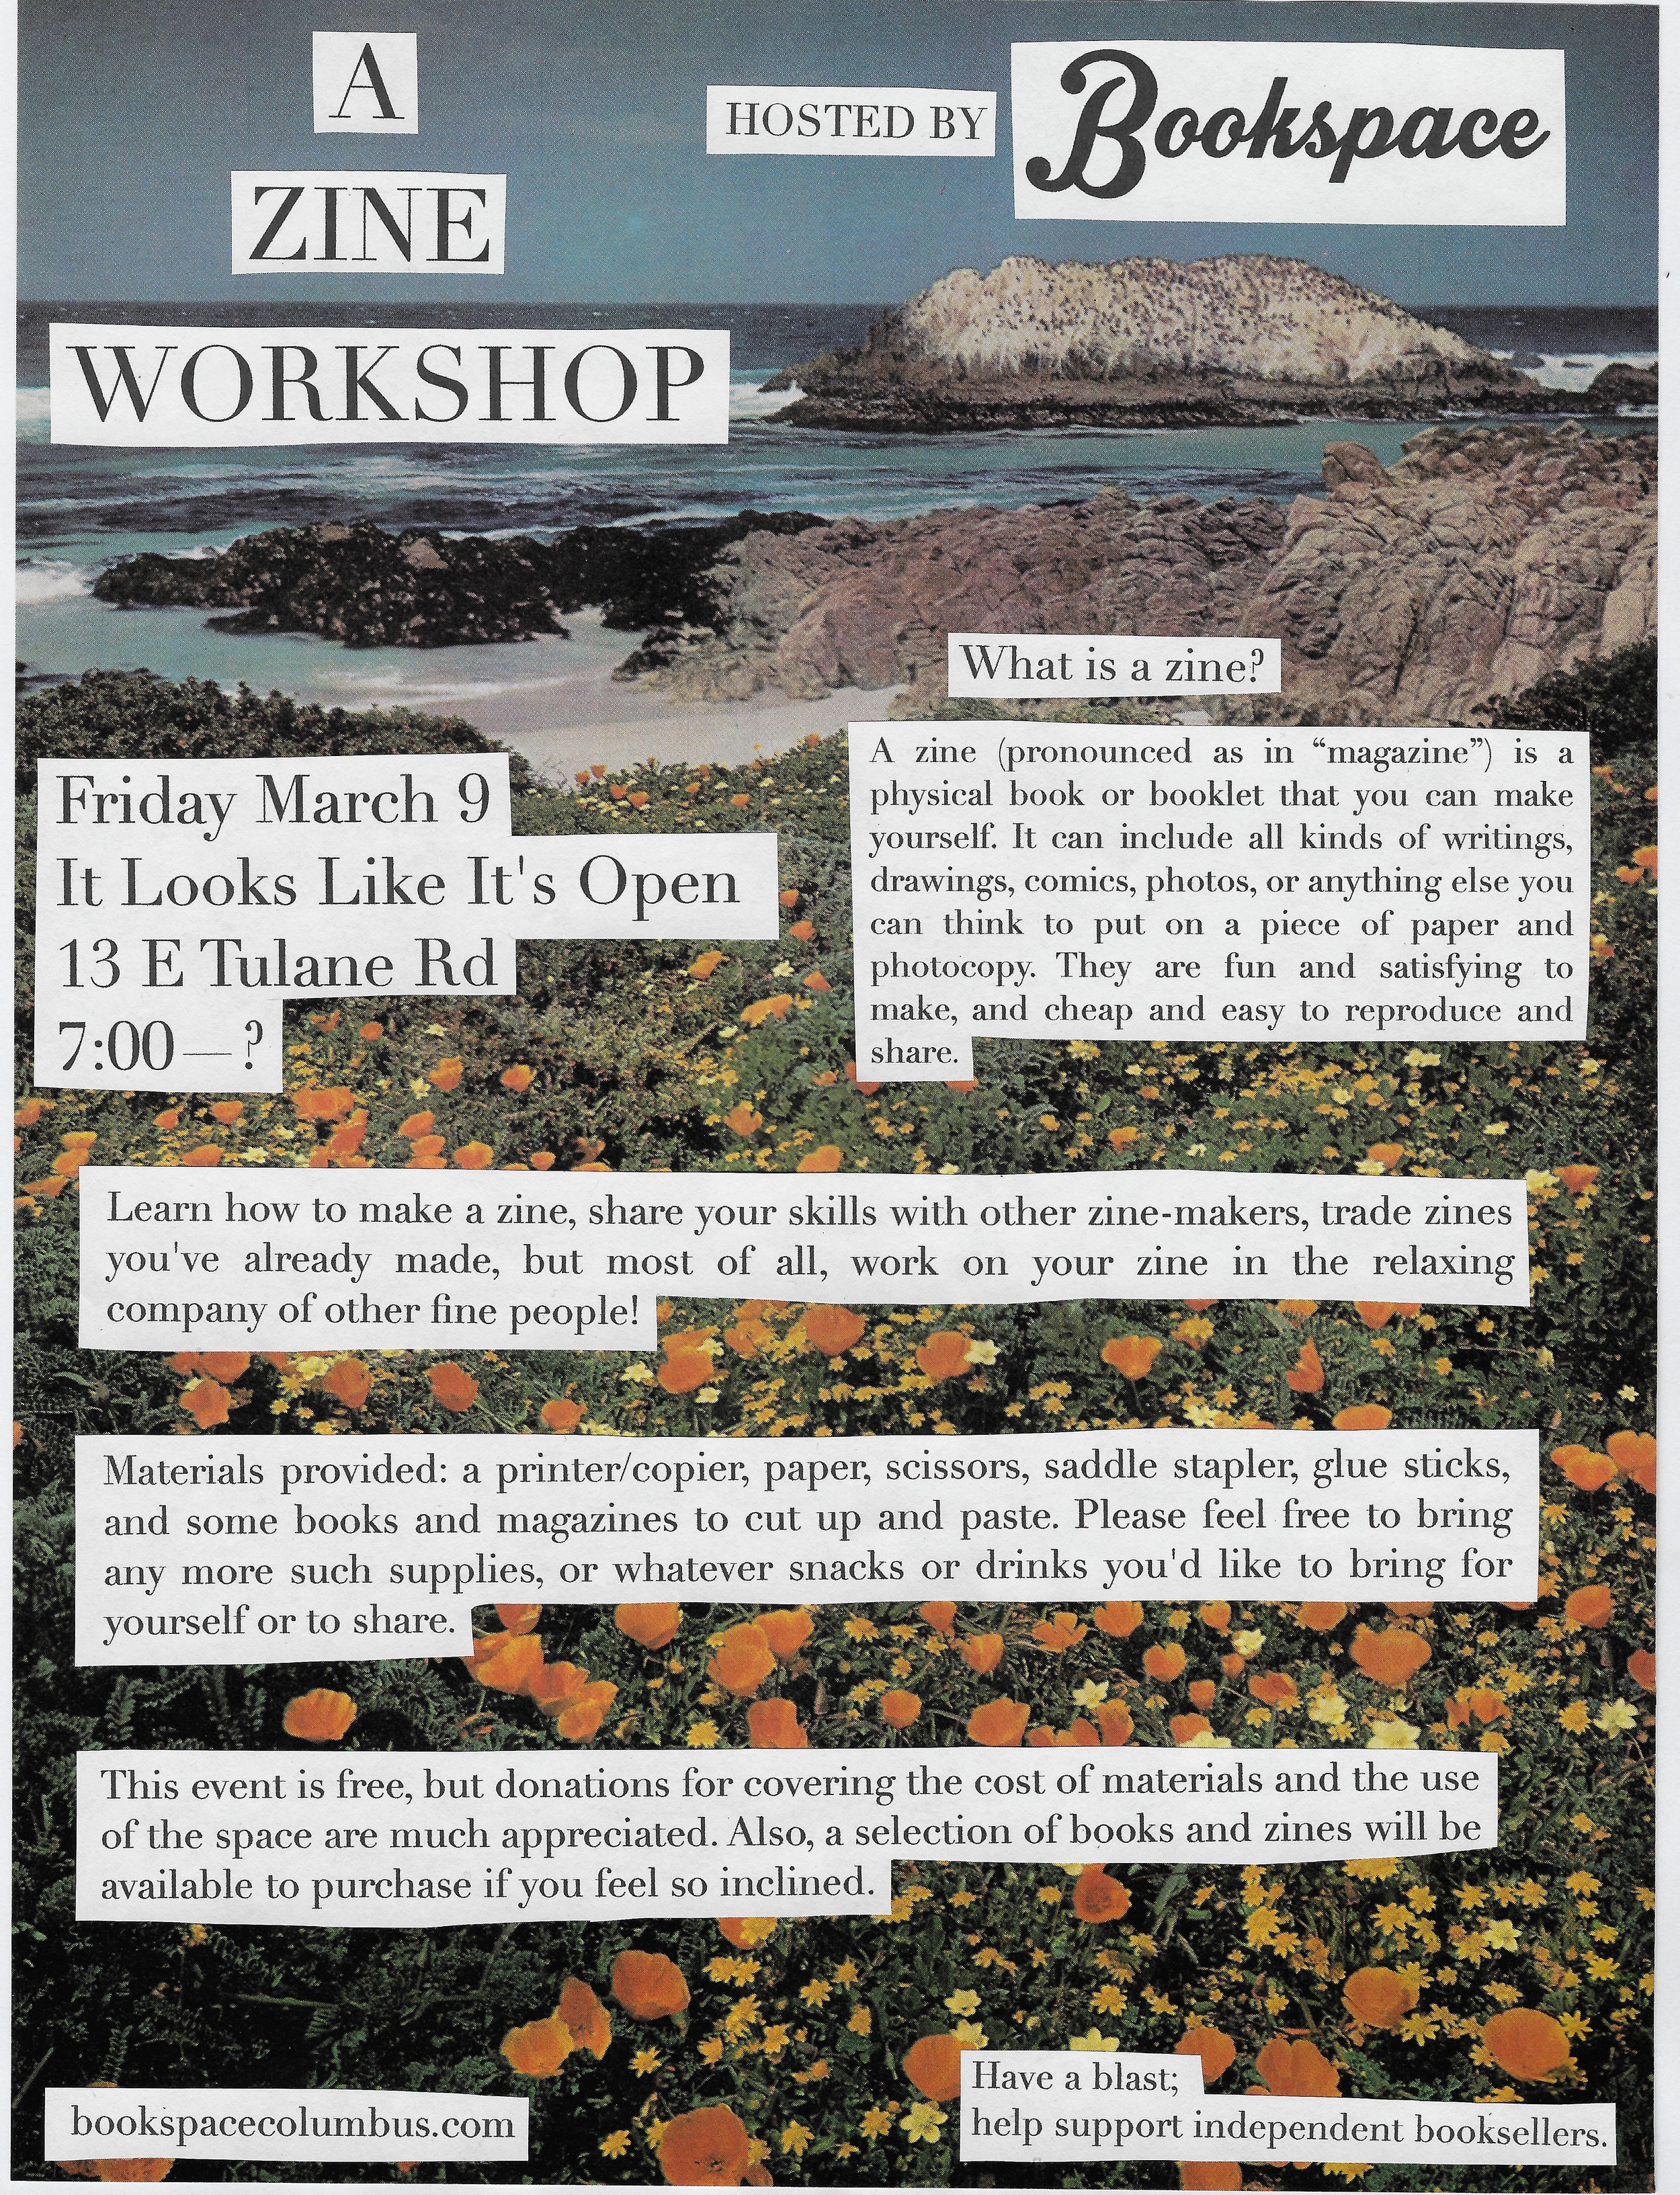 """[image description: flyer for the zine-making workshop. The text in the photo reads: """"A zine making workshop hosted by BookSpace. Friday, March 9th at It Looks Like It's Open at 13 E. Tulane Rd. at 7pm. What is a zine? A zine (pronounced as in """"magazine"""") is a physical book or booklet that you can make yourself. It can include all kinds of writing, comics, drawings, photos, or anything else you can think of to put on a piece of paper and photocopy. They are fun and satisfying to make and cheap and easy to reproduce and share. Learn how to make a zine, share your skills with other zine-makers, trade zines you've already made, but most of all, work on your zine in the relaxing company of other fine people. Materials provided: a printer/copier, paper, scissors, stapler, glue sticks, and some books and magazines to cut up and paste. Please feel free to bring any other such supplies or whatever snacks or drinks you'd like to bring for yourself or to share. The event is free, but donations for covering the cost of materials and use of the space are appreciated. A selection of books and zines will be available for purchase if you're so inclined.""""]"""